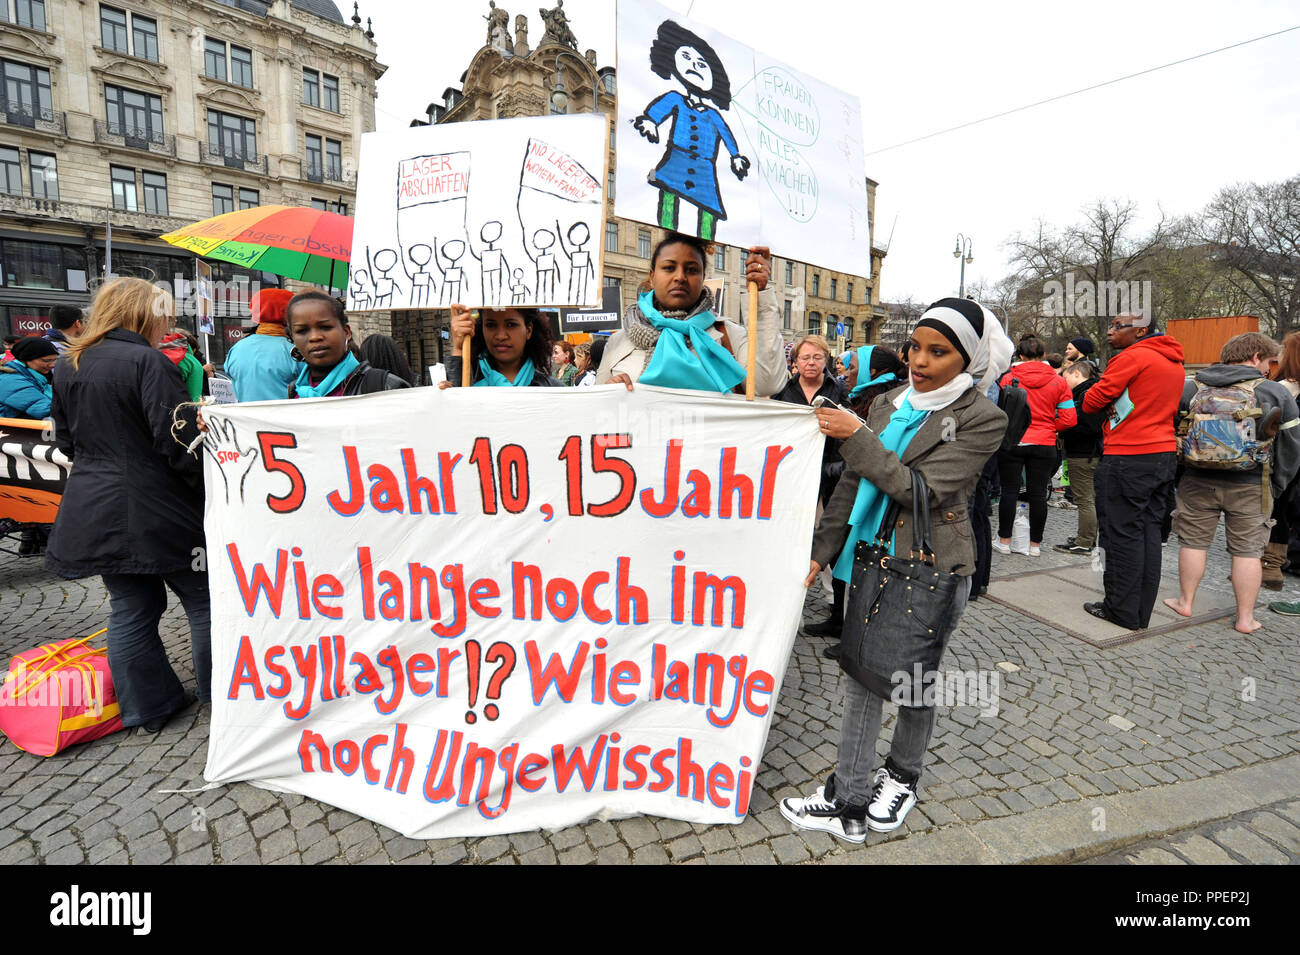 Refugee women demonstrate in Munich against the Lagerpflicht (the law that forces refugee women and children to live together in inhumane conditions in collective housing), as they are frequently victims of violence in communal accommodations. - Stock Image